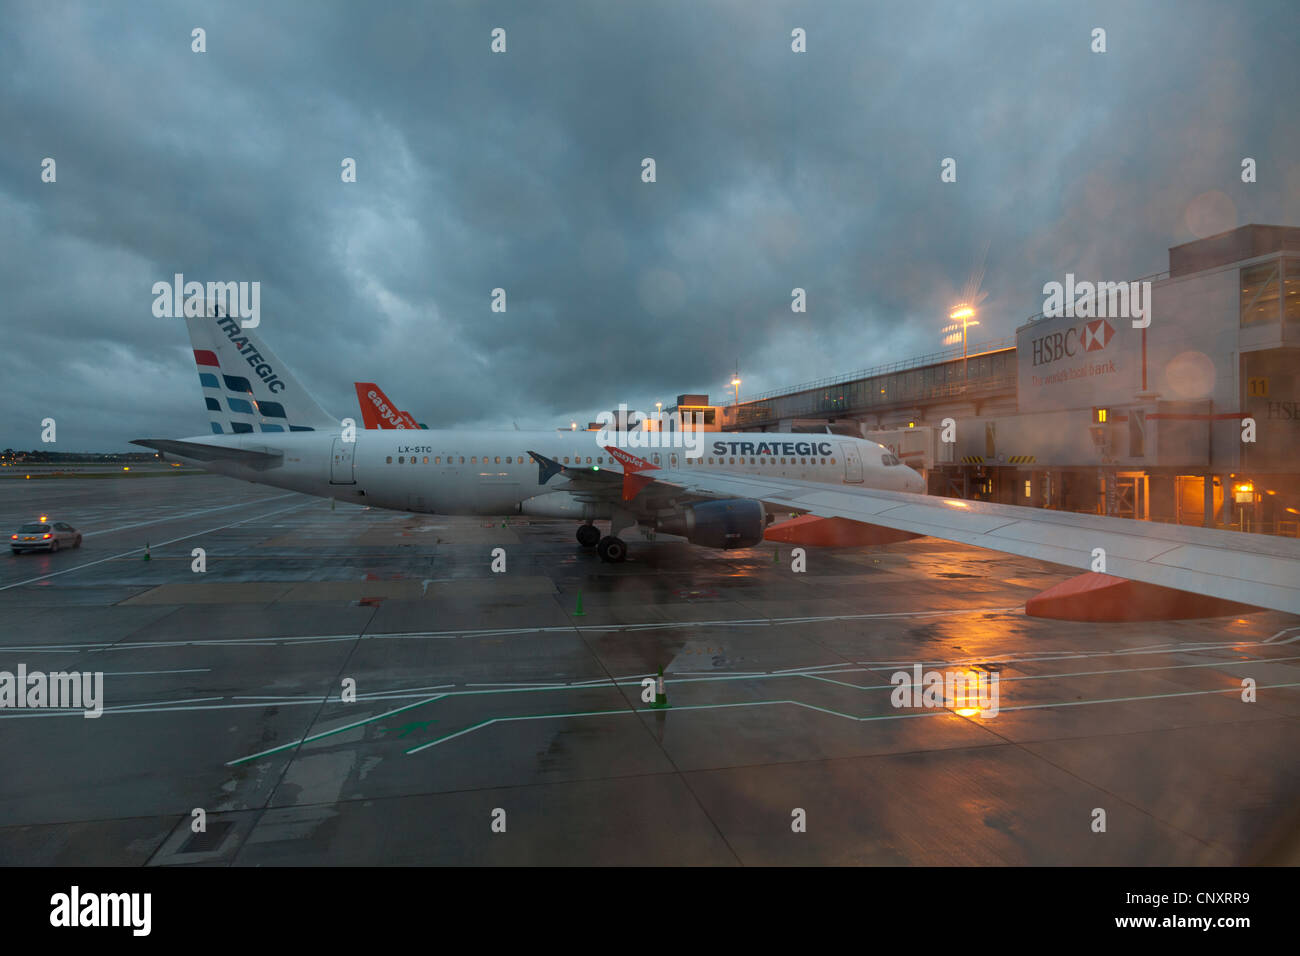 Strategic Airlines aircraft on stand at Gatwick Airport South Terminal in he early morning on a wet and stormy day - Stock Image